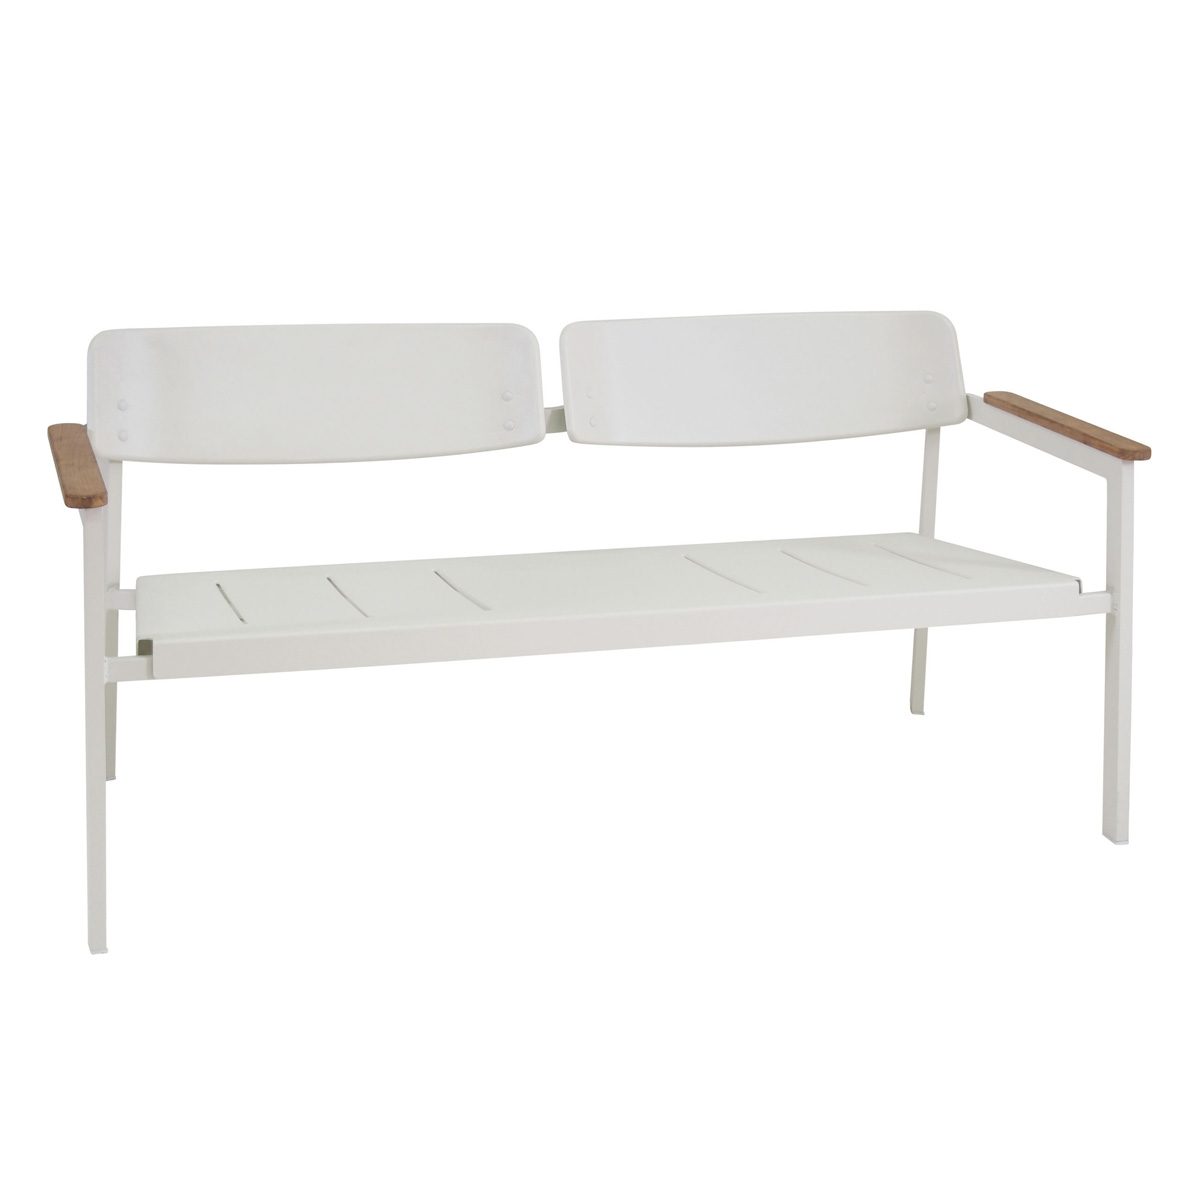 Shine Sofa 260 from Emu, designed by Arik Levy